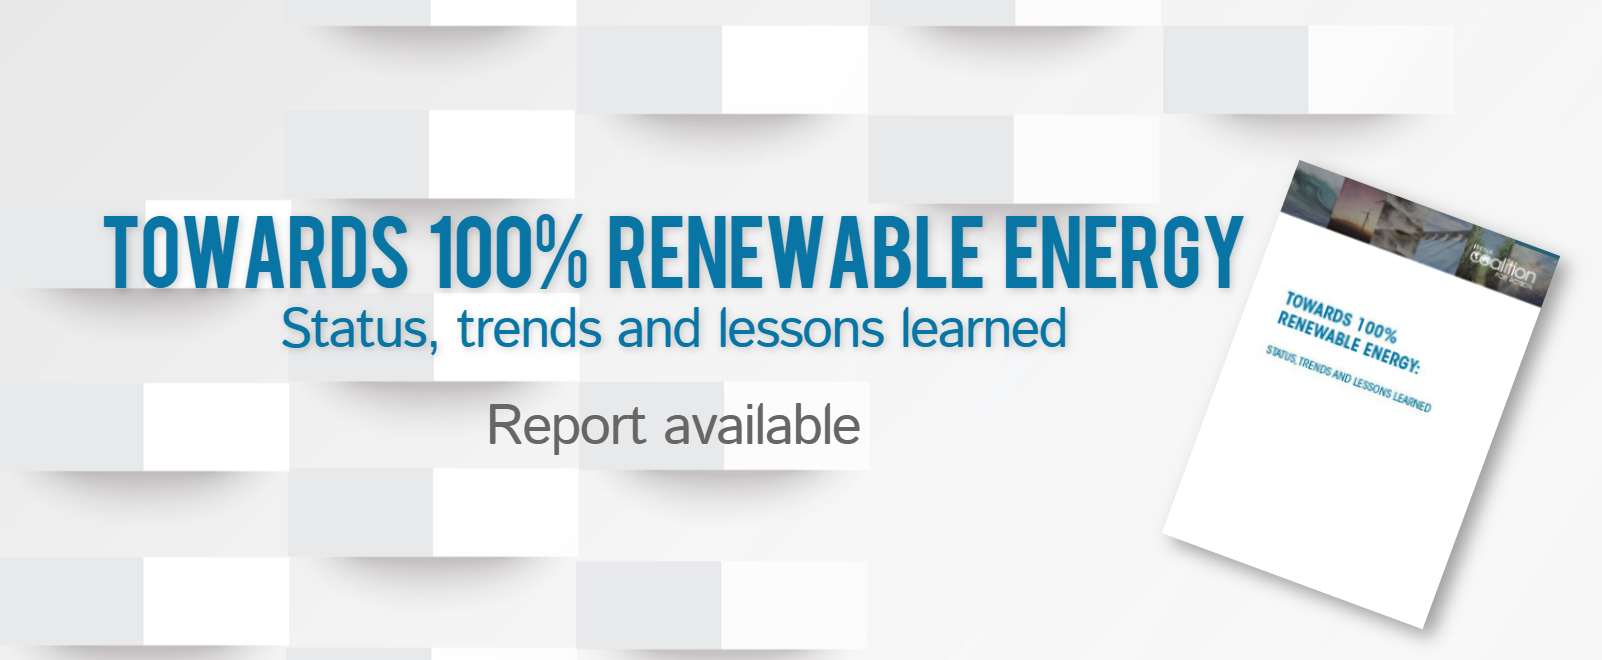 Towards 100% renewable energy: Status, trends and lessons learnt